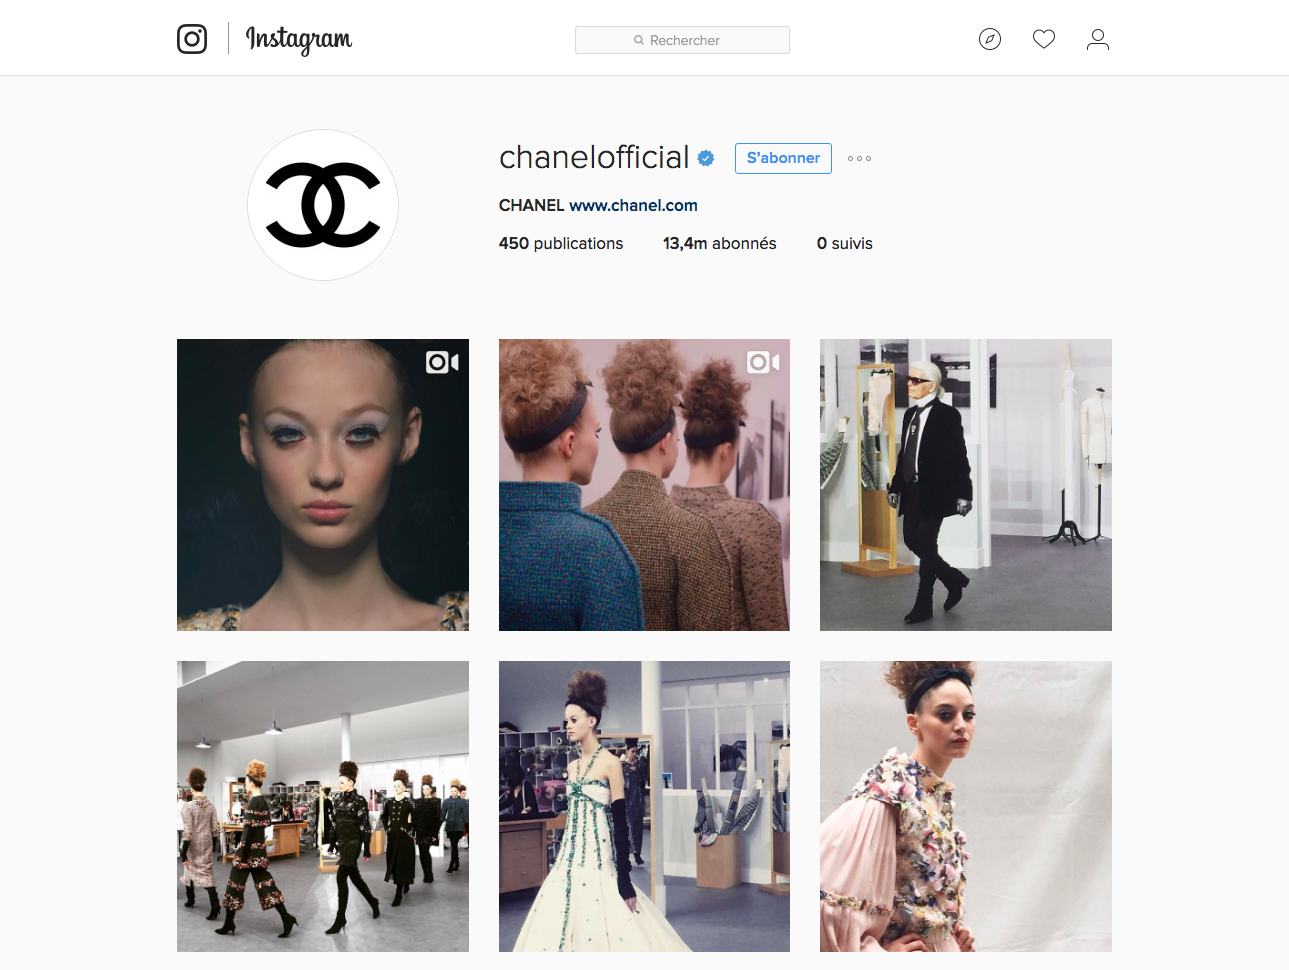 Chanel-Instagram-social-media-strategie